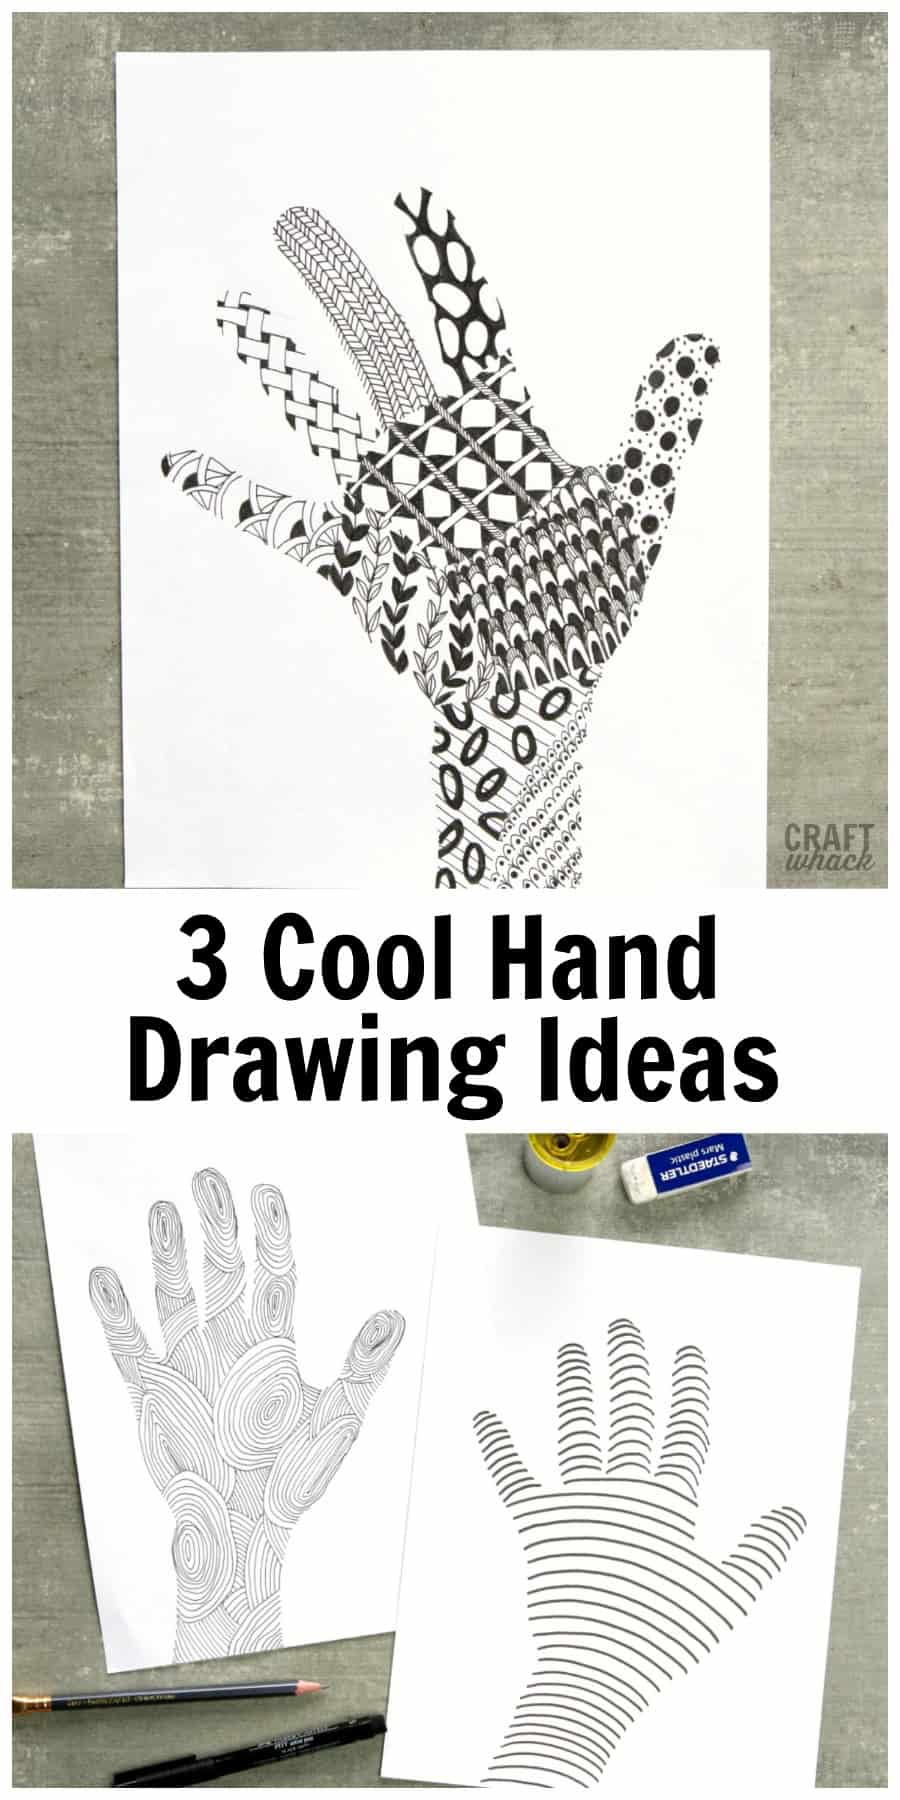 3 Fun Hand-Tracing Drawing Ideas